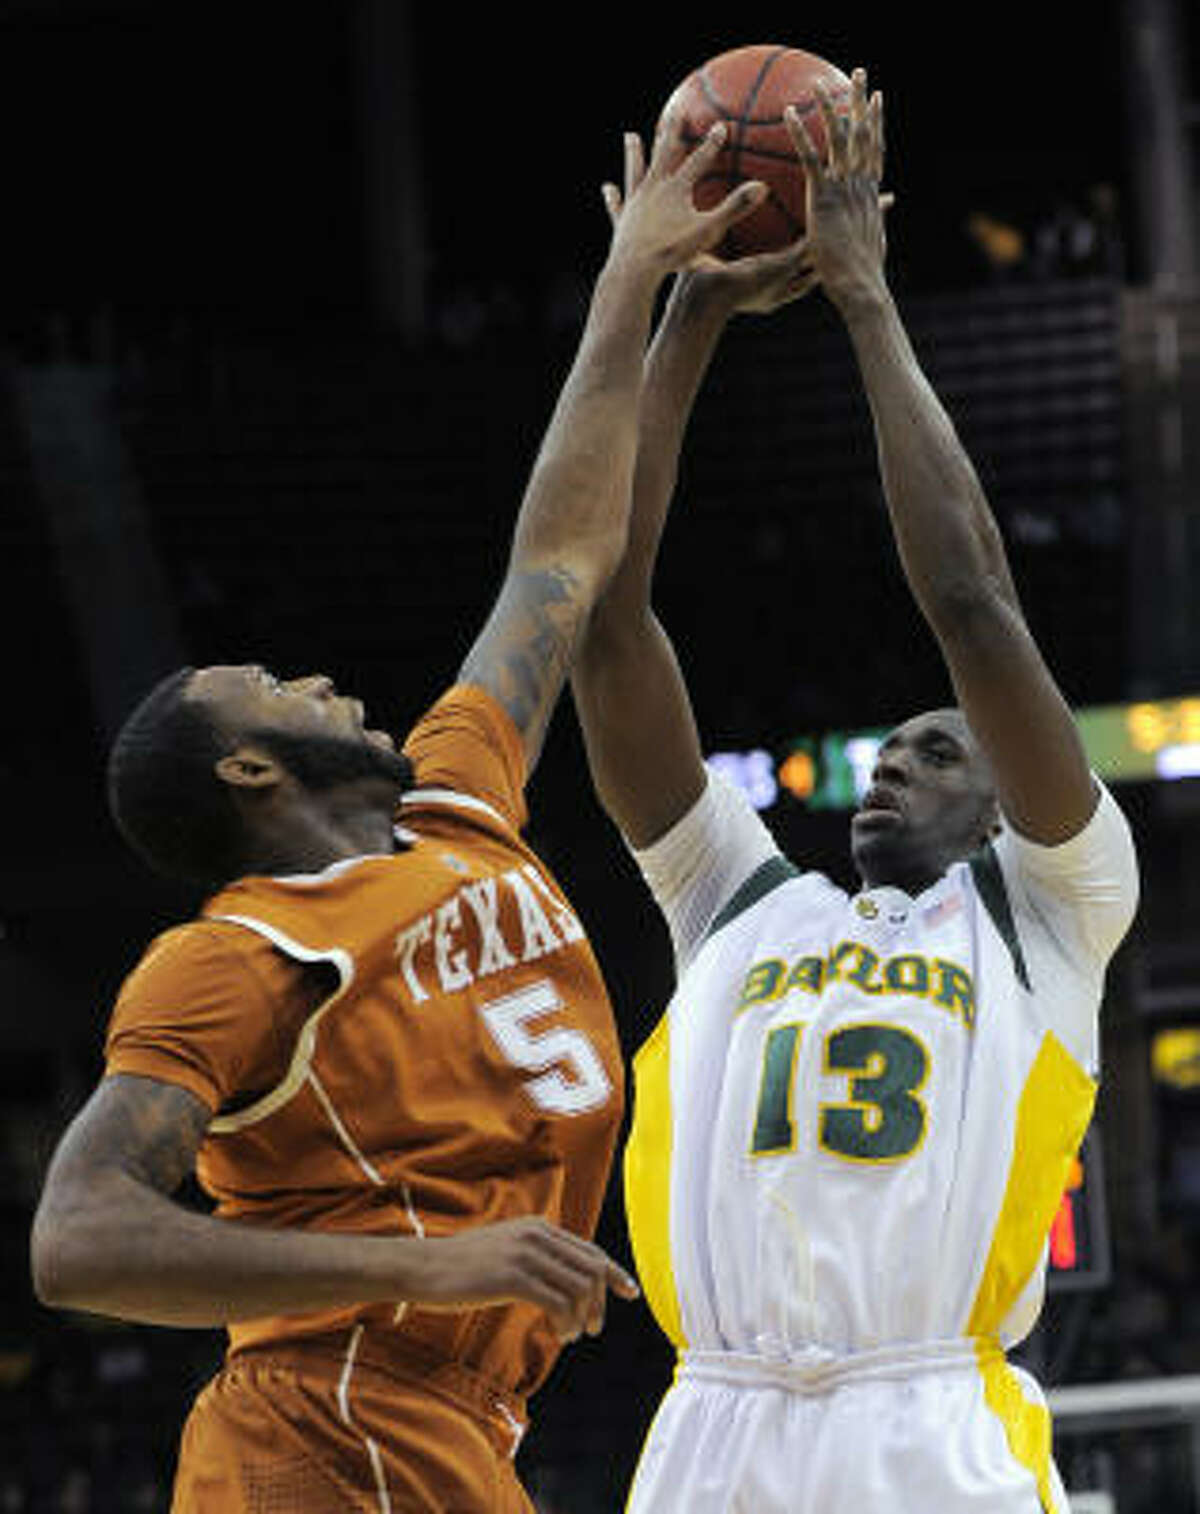 Ekpe Udoh and Baylor enter the Tournament as Texas' highest-seeded team while Damion James and Texas had a poor second half resulting in a No. 8 seed.